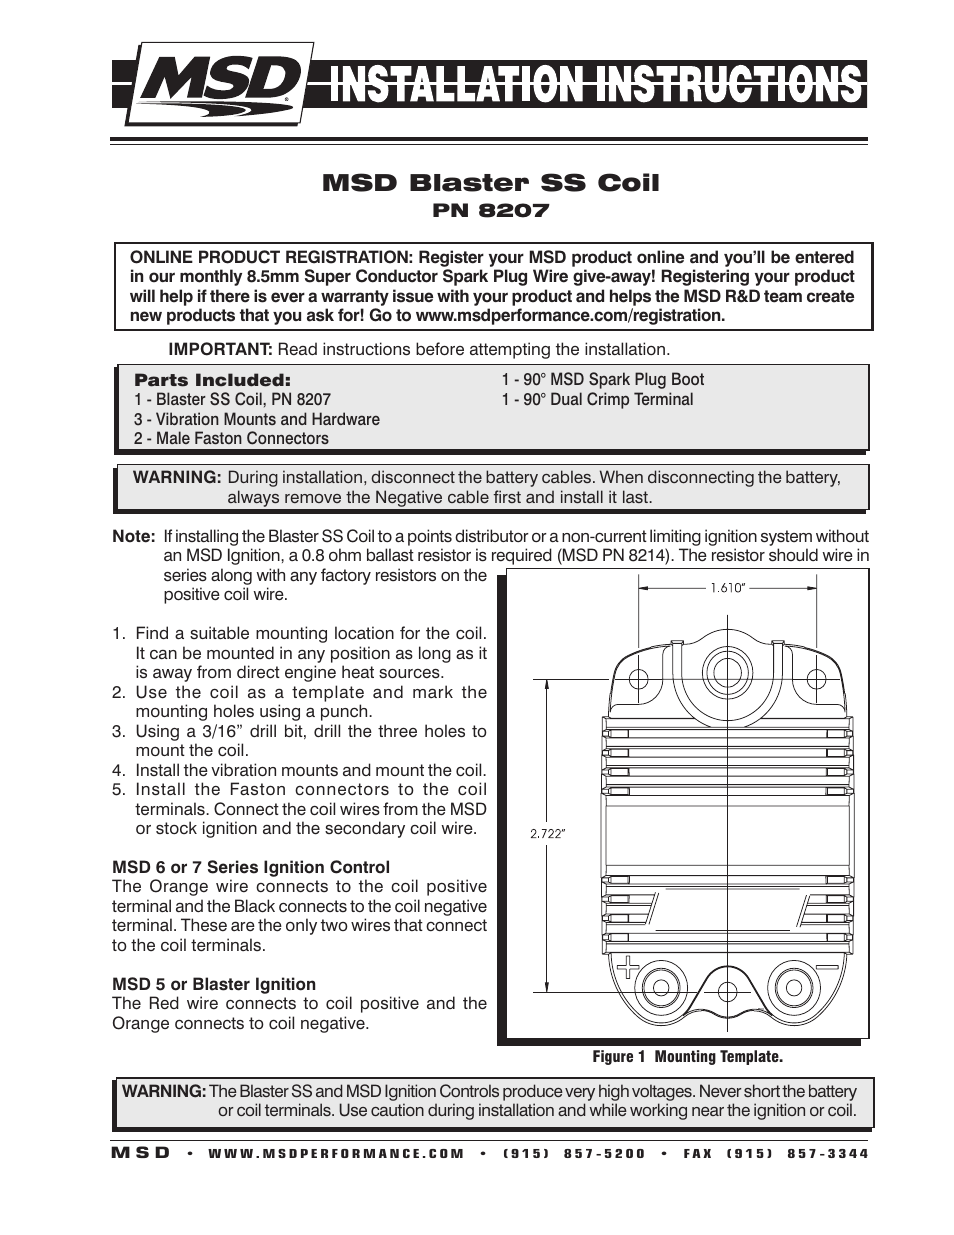 msd blaster coil wiring diagram mercedes r129 radio car ignition www toyskids co 8207 ss installation user manual 2 pages harley chrysler